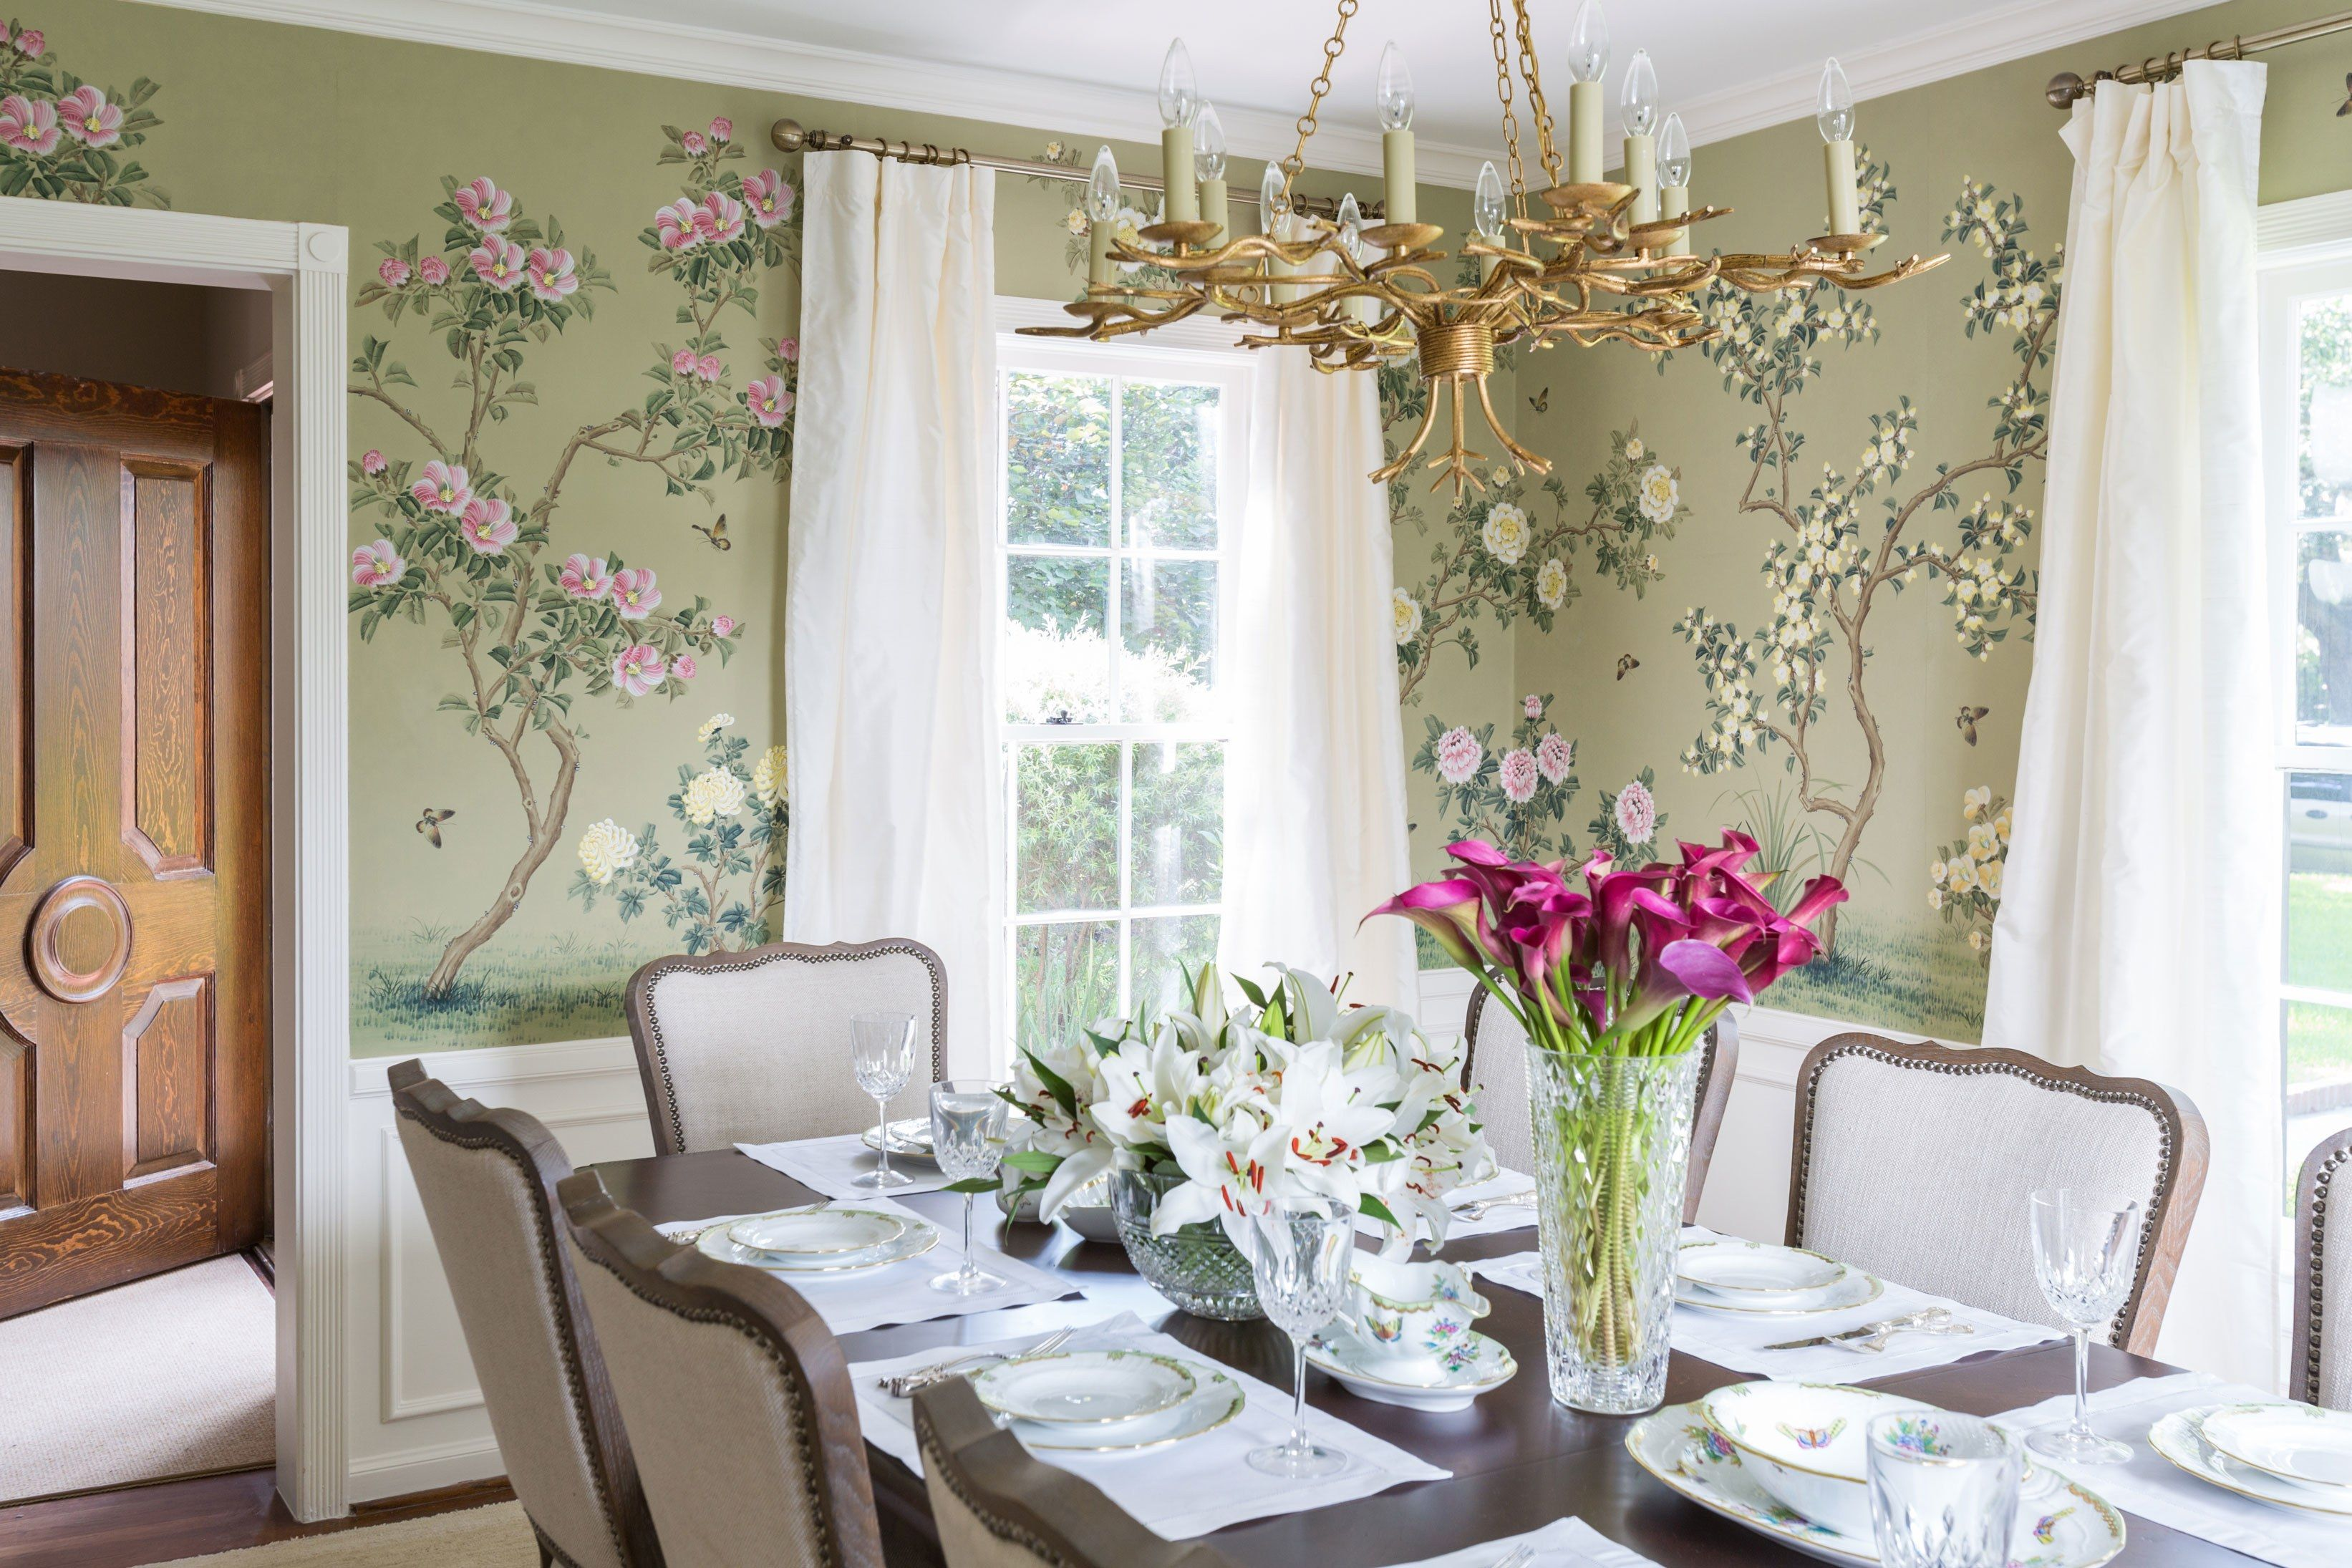 9 Renovation Donts And Other Decorating Mistakes To Avoid Dining AreaDining